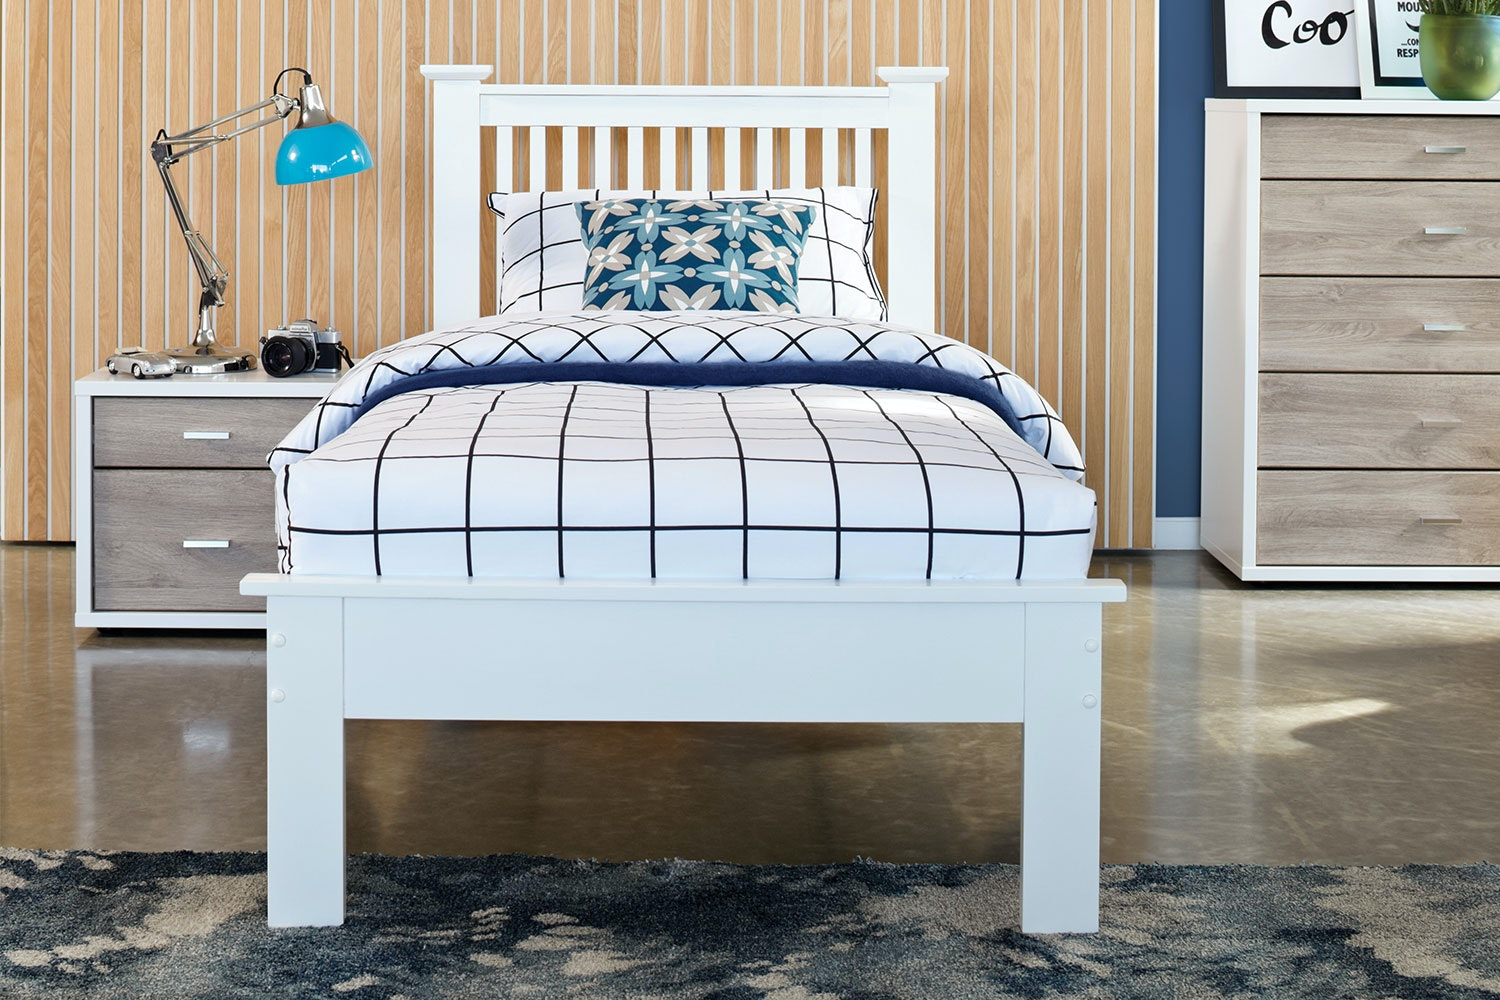 Aston King Single Bed Frame by Nero Furniture